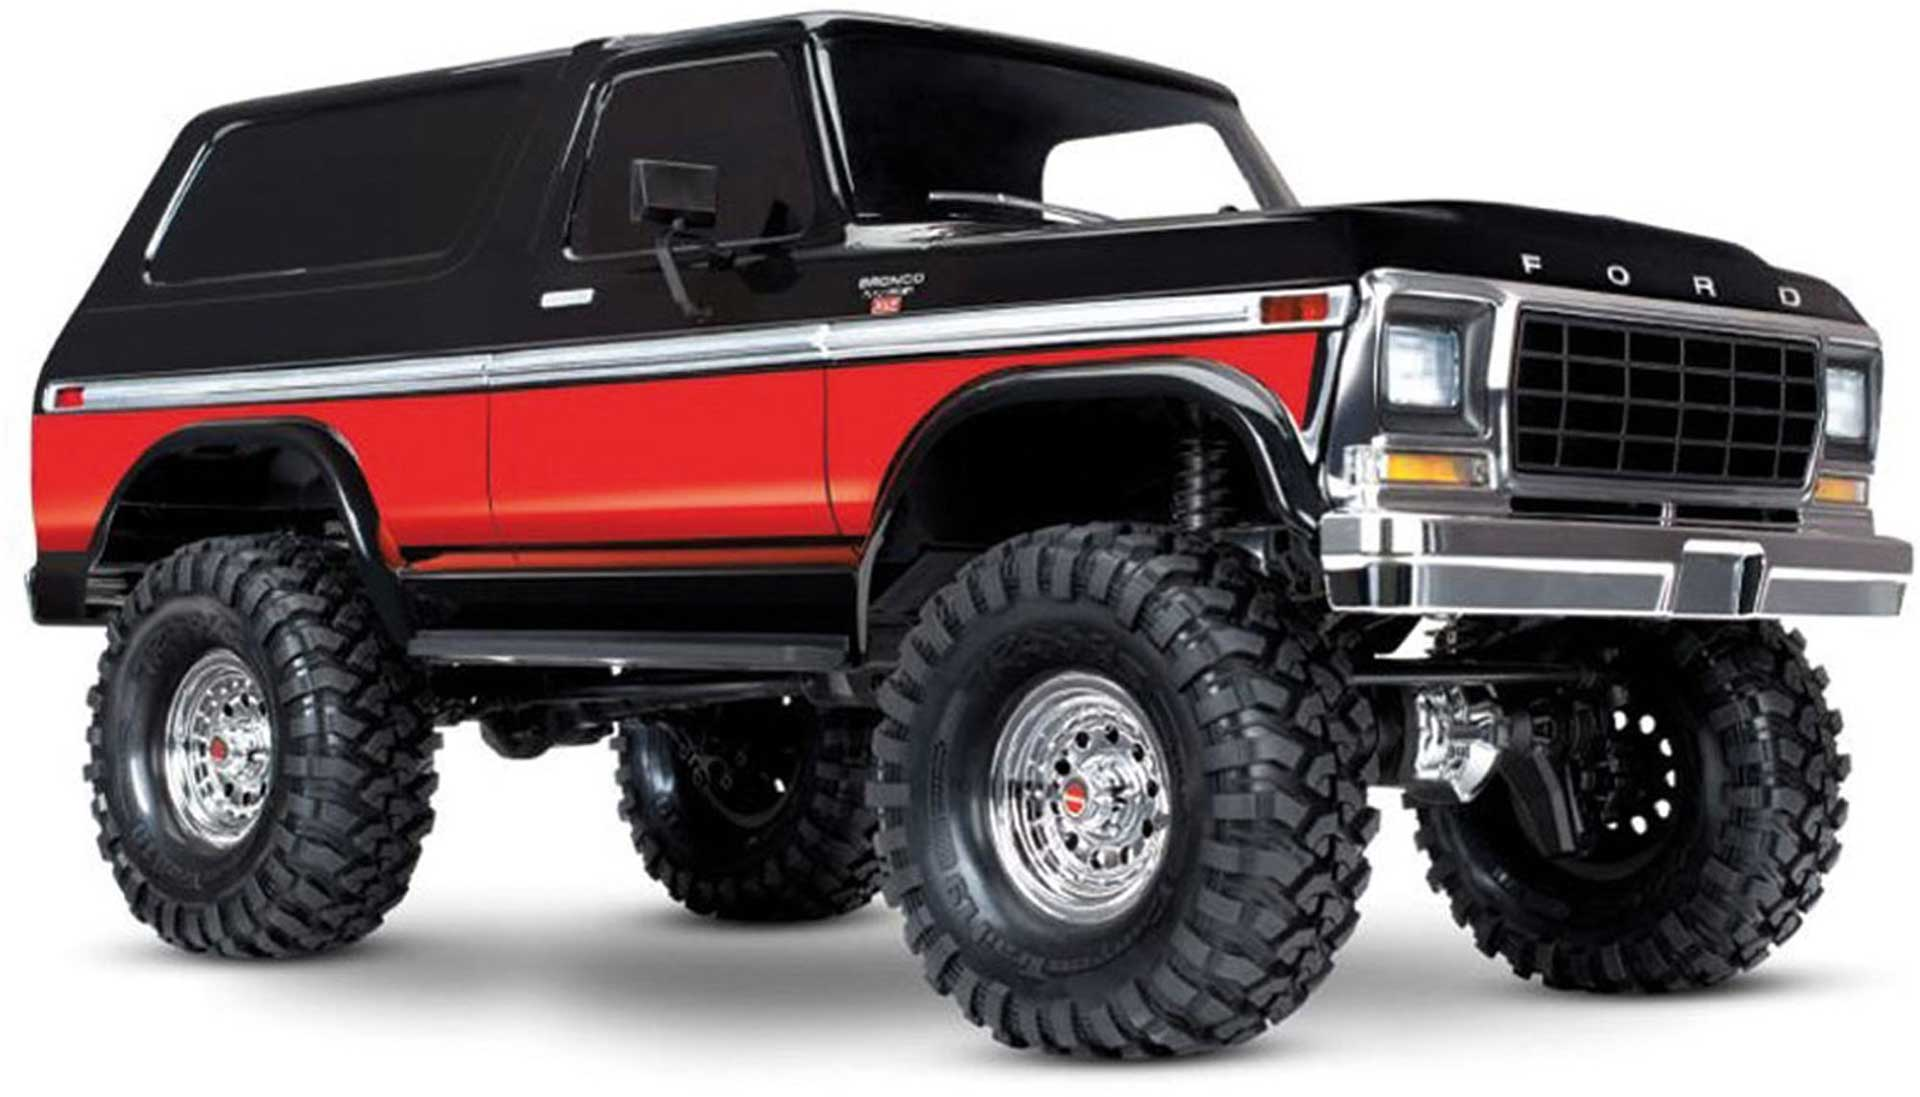 TRAXXAS TRX-4 FORD BRONCO BLACK/RED RTR 1/10 CRAWLER 2,4GHZ WITHOUT BATTERY & CHARGER